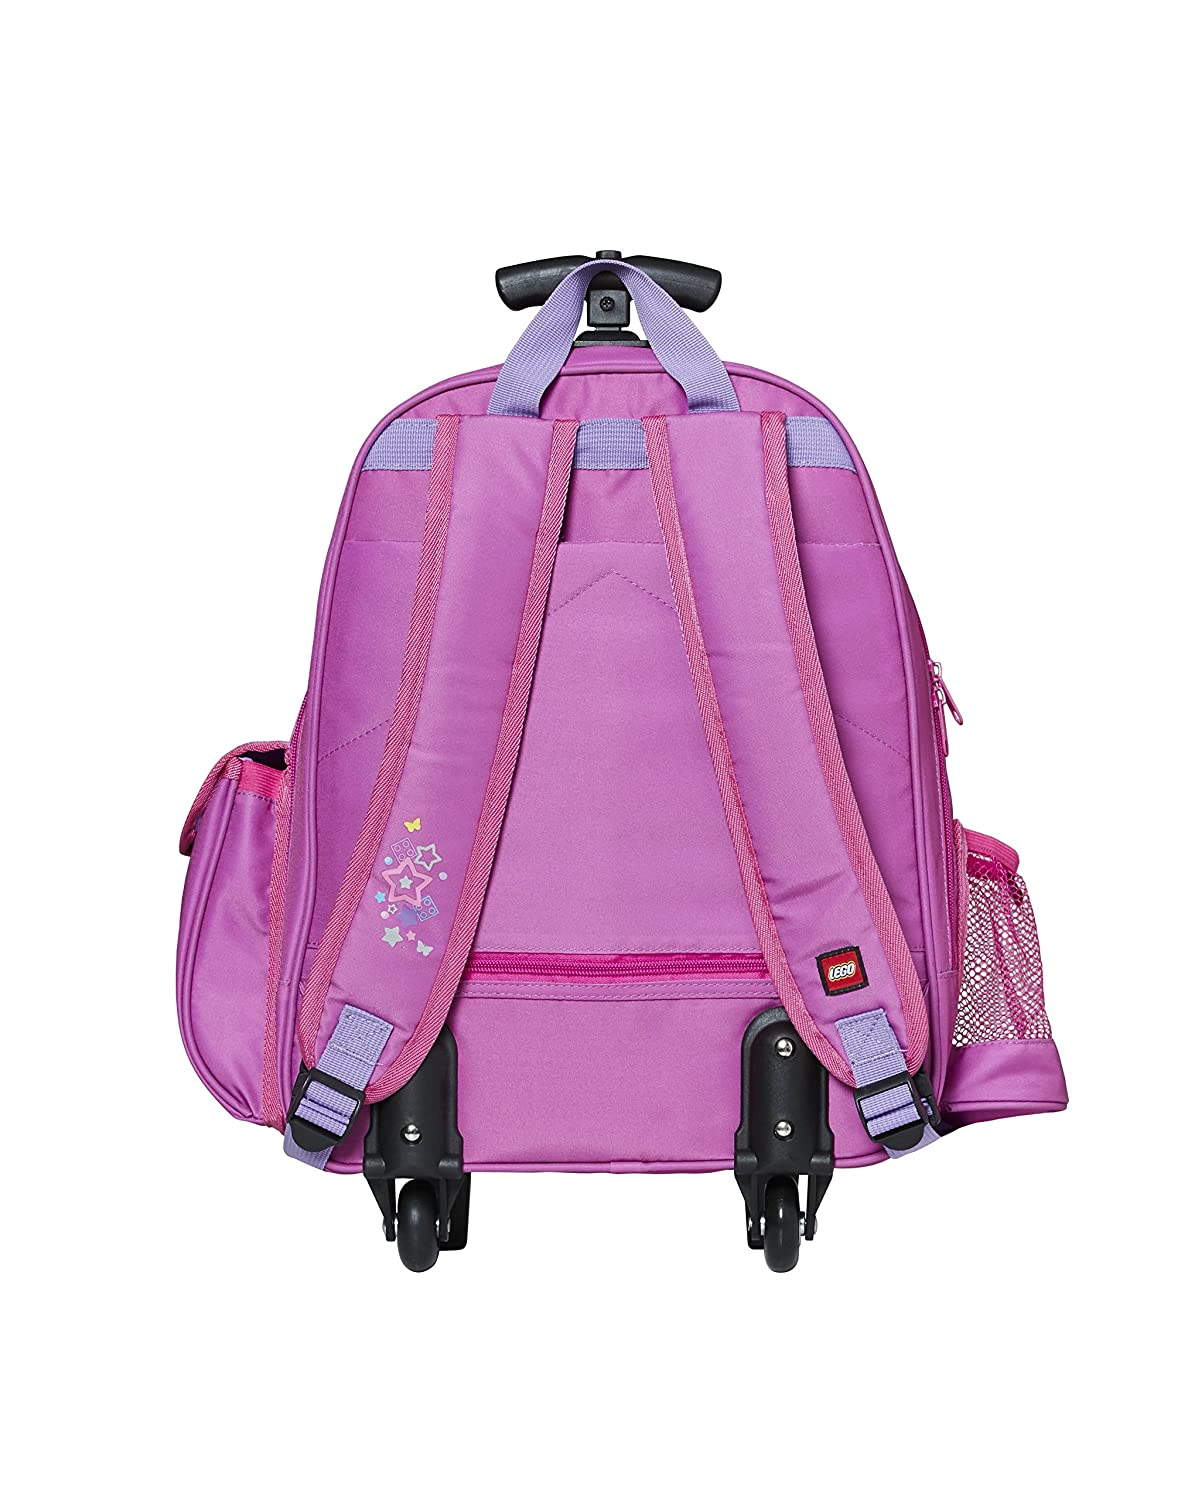 ae516674cf4 Lego LEGO Friends Funpark Rucksack Trolley Children's Backpack, 50 cm,  Pink: Amazon.co.uk: Luggage